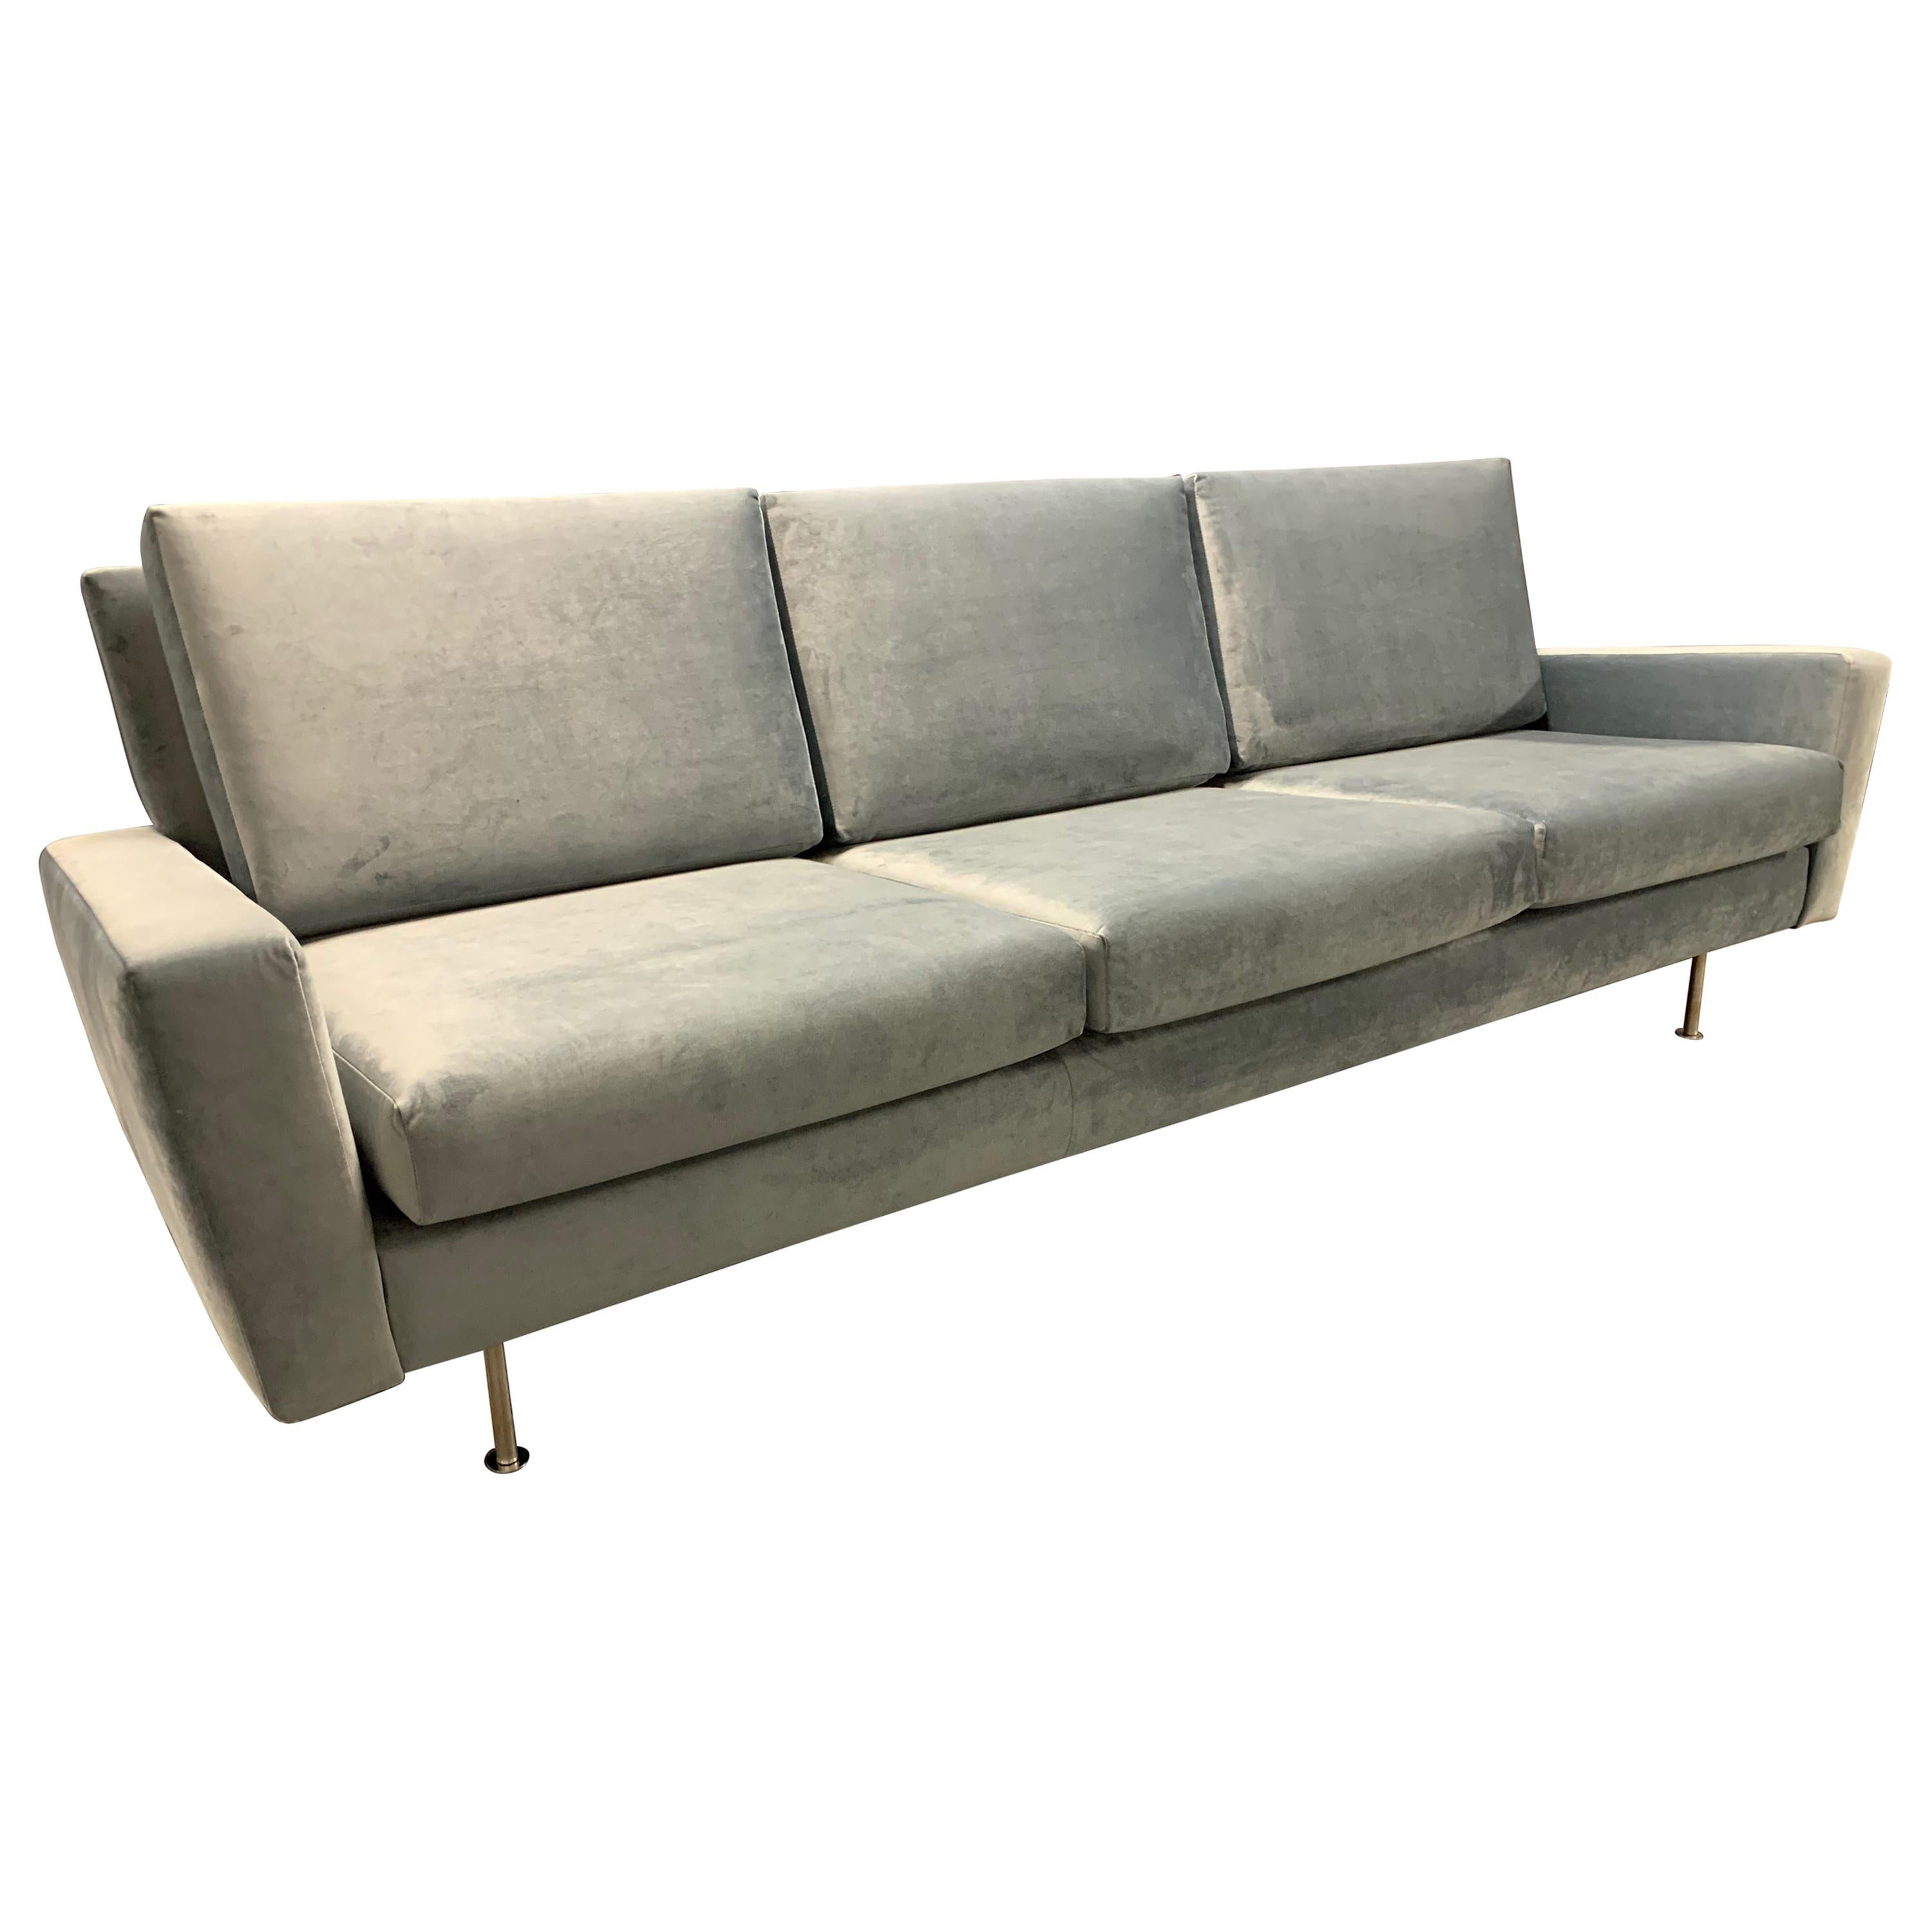 Wonderful No.26 3-4 seater sofa by Florence Knoll / like new!